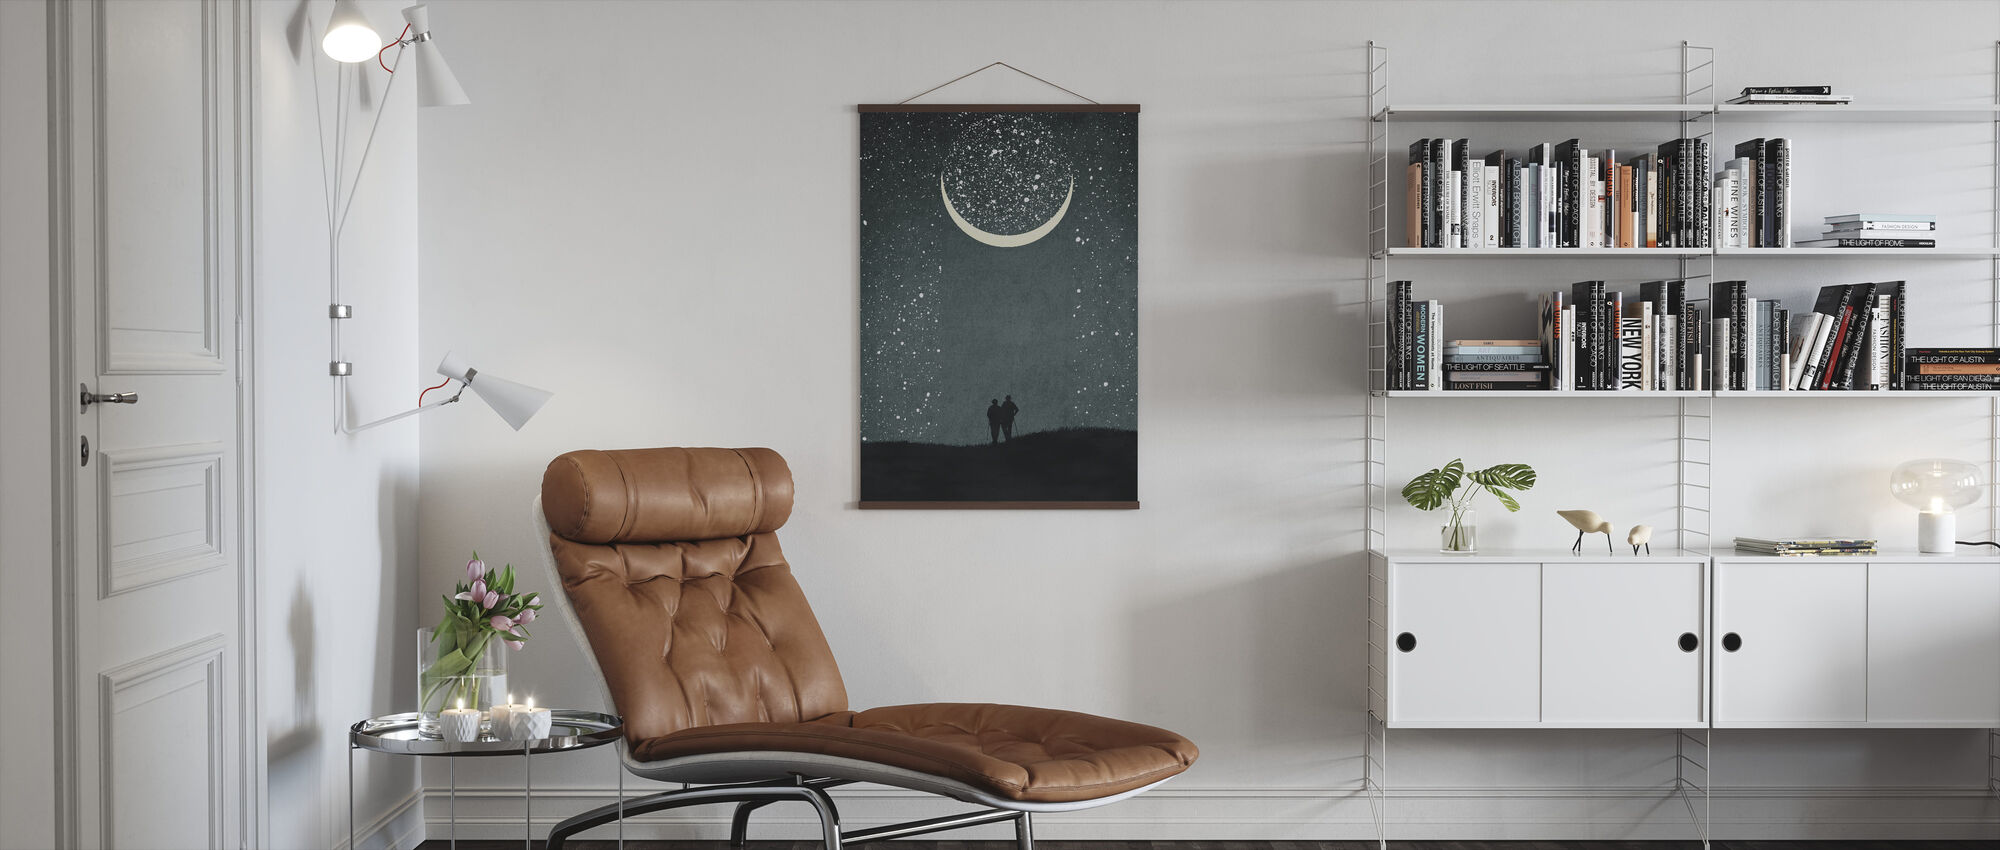 Dreaming with You - Poster - Living Room